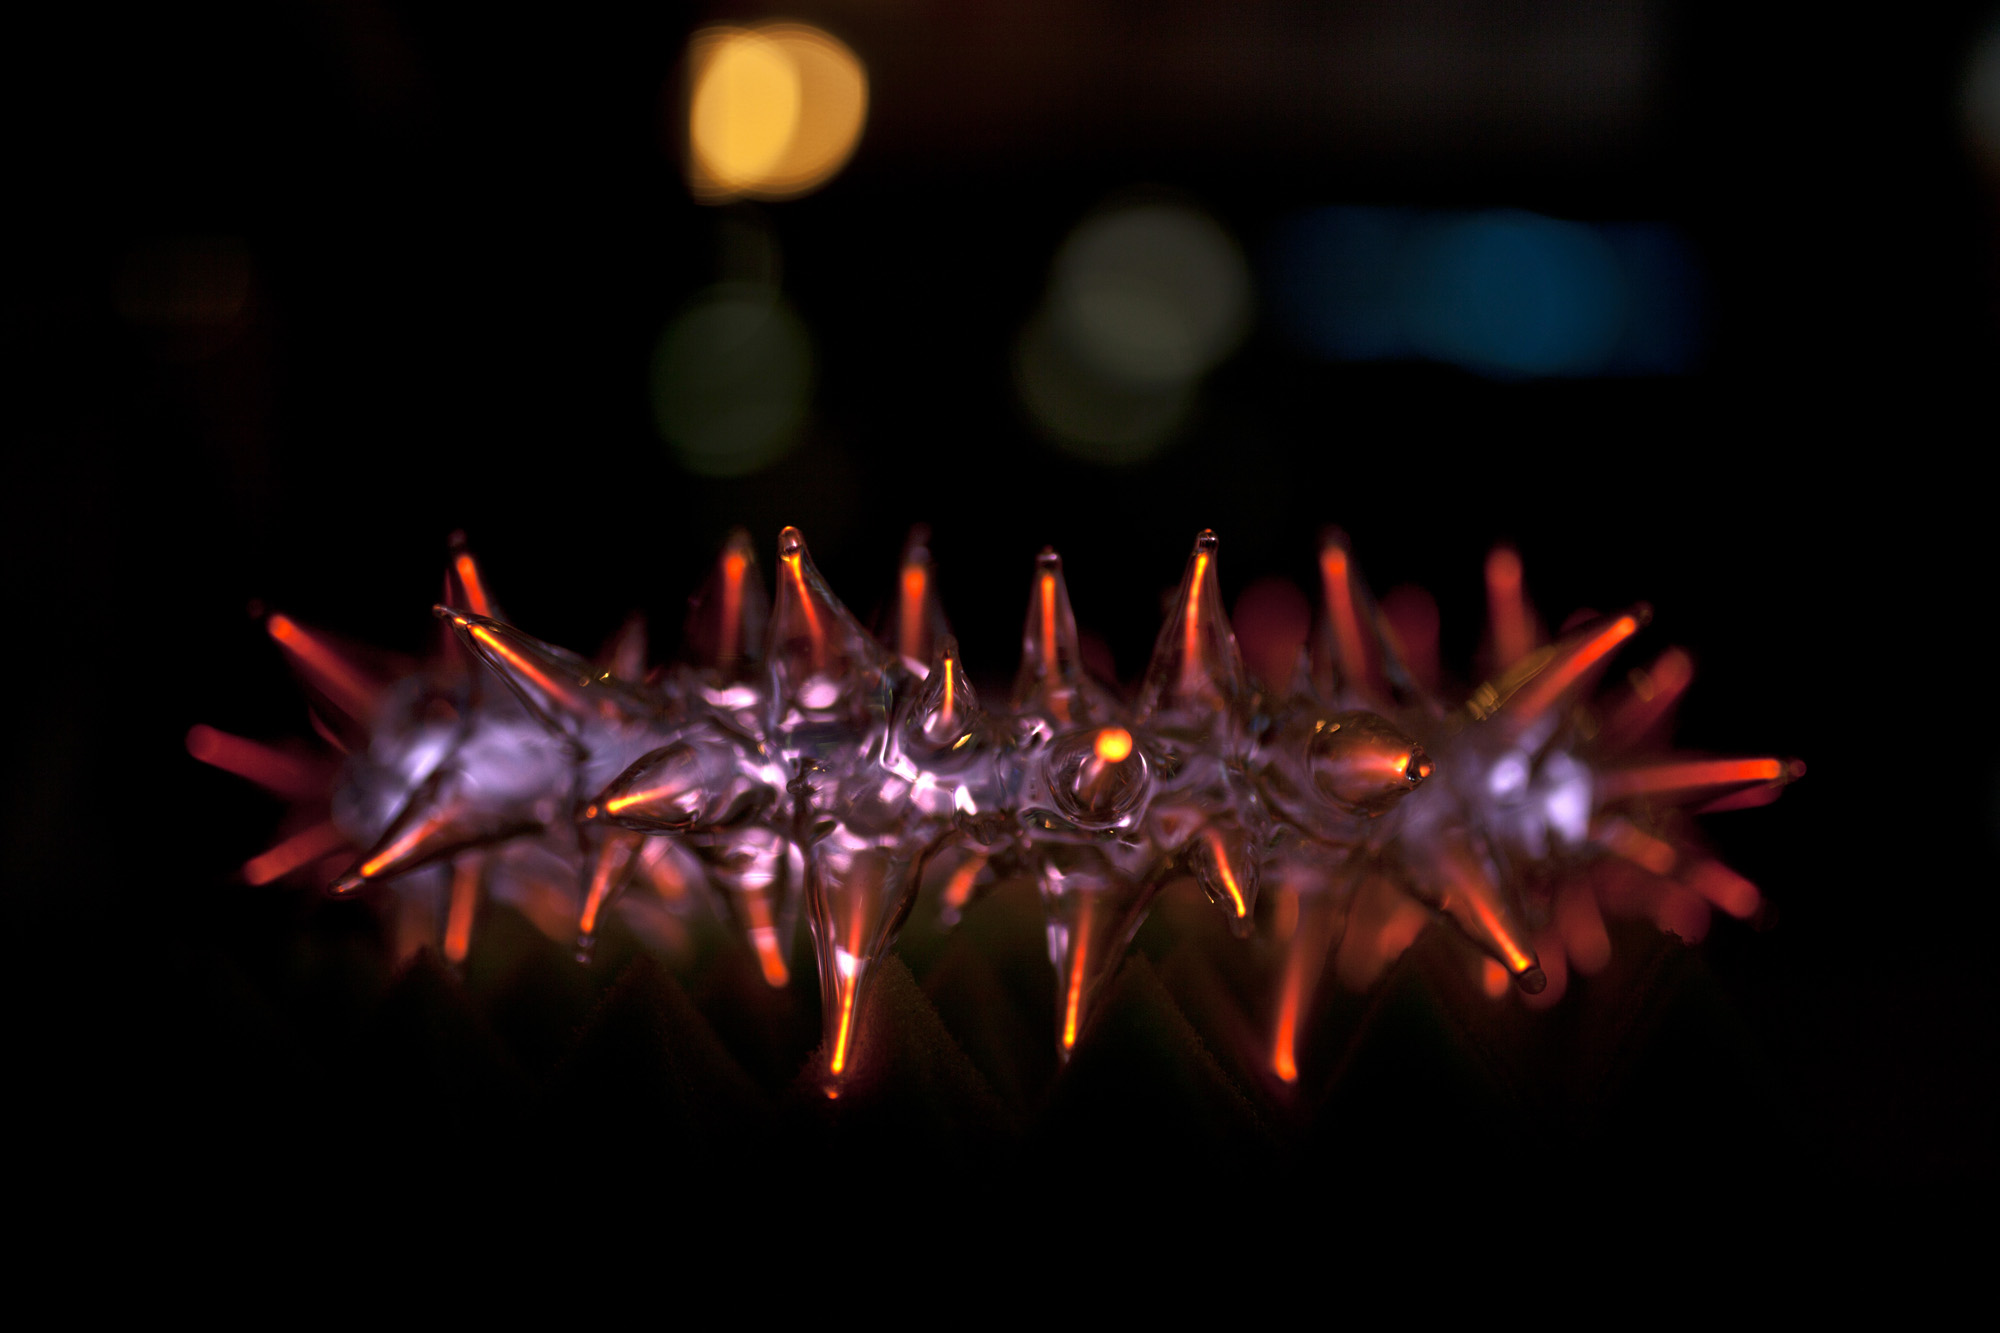 Plasma art glass sculpture